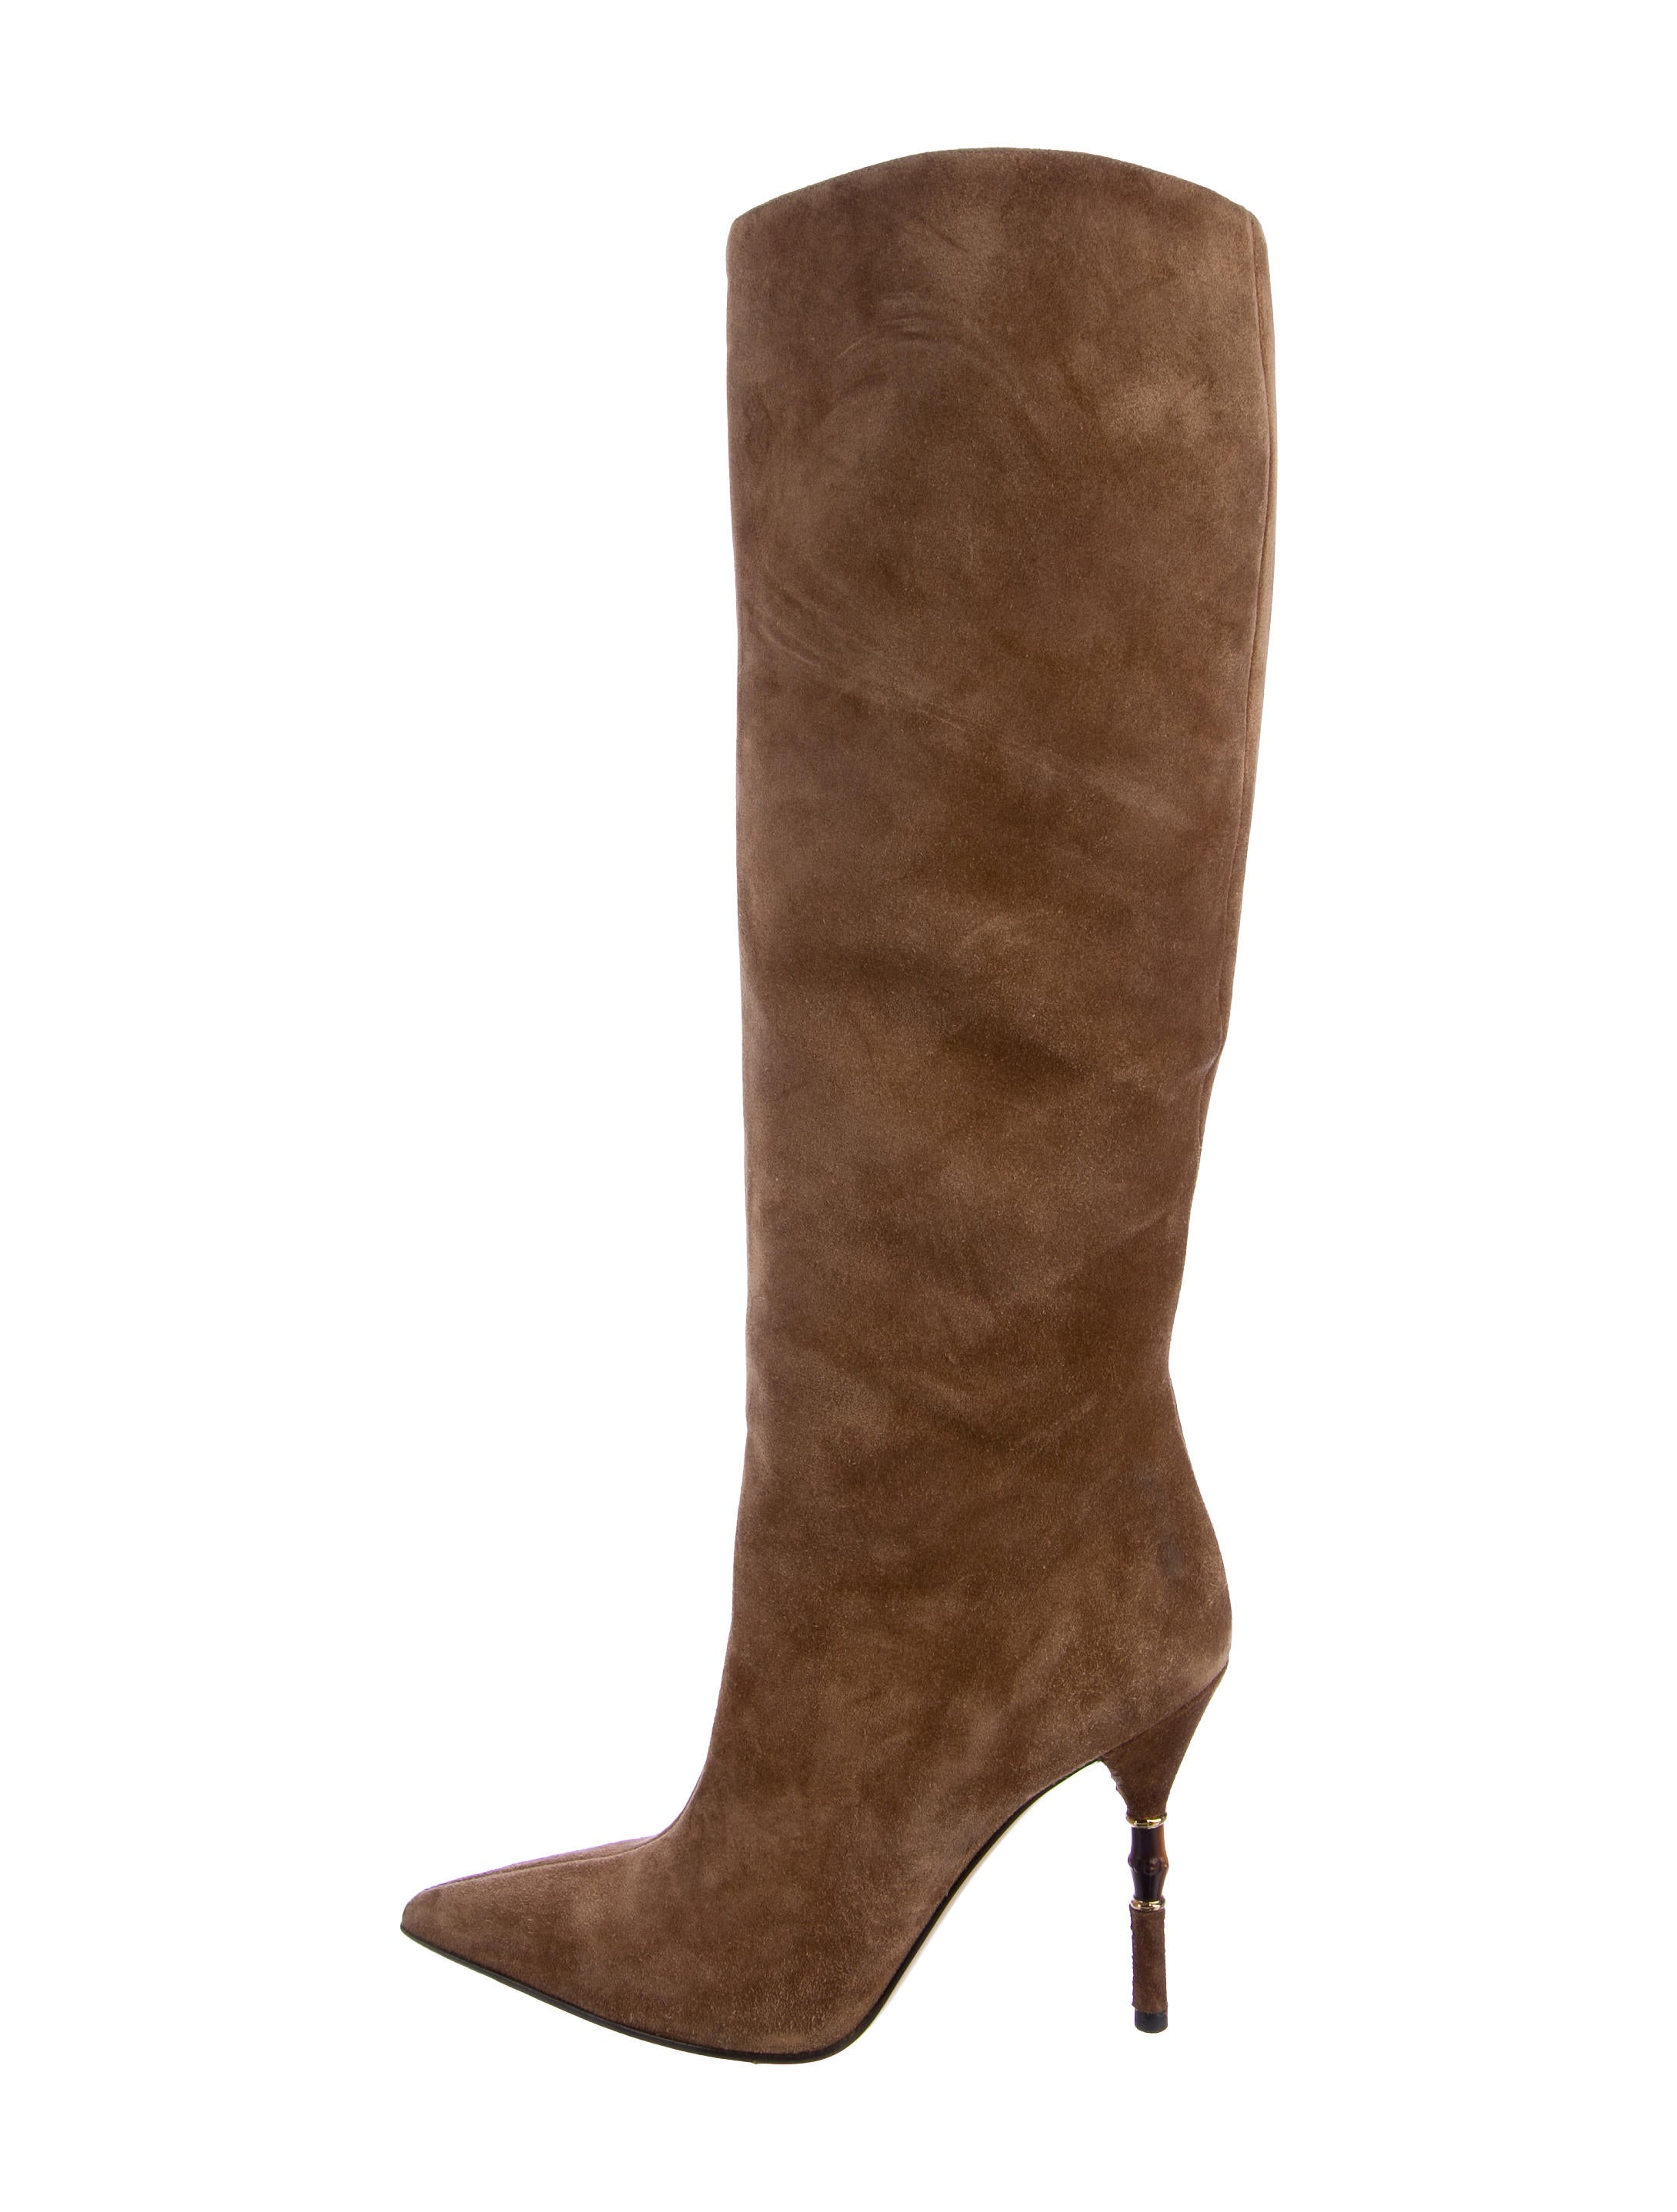 gucci bamboo knee high boots shoes guc159237 the